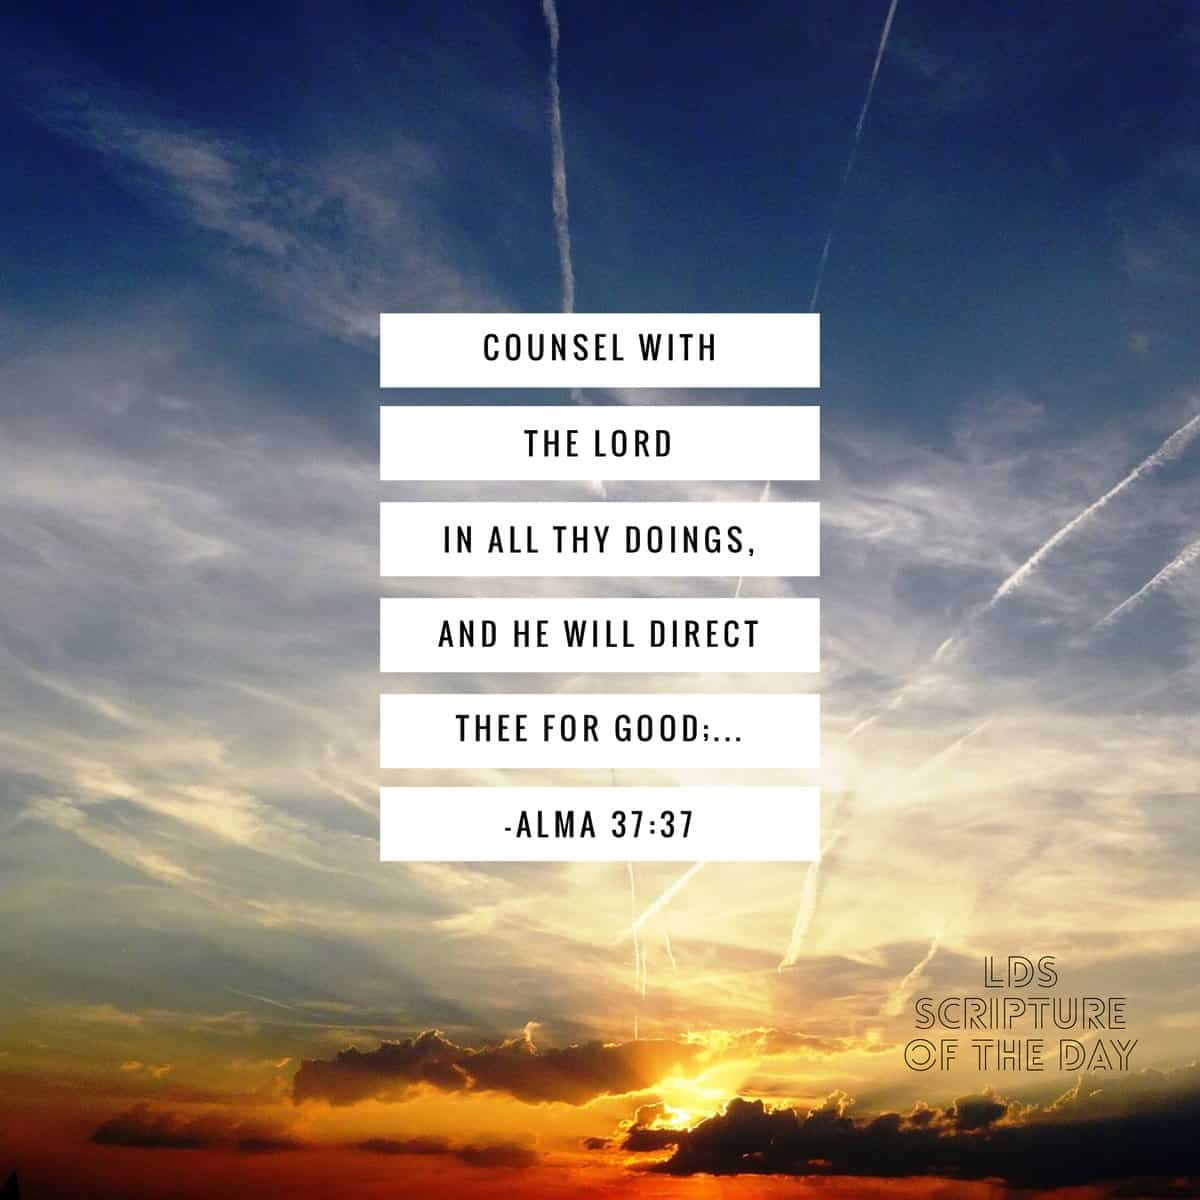 Counsel with the Lord in all thy doings, and he will direct thee for good; Alma 37:37